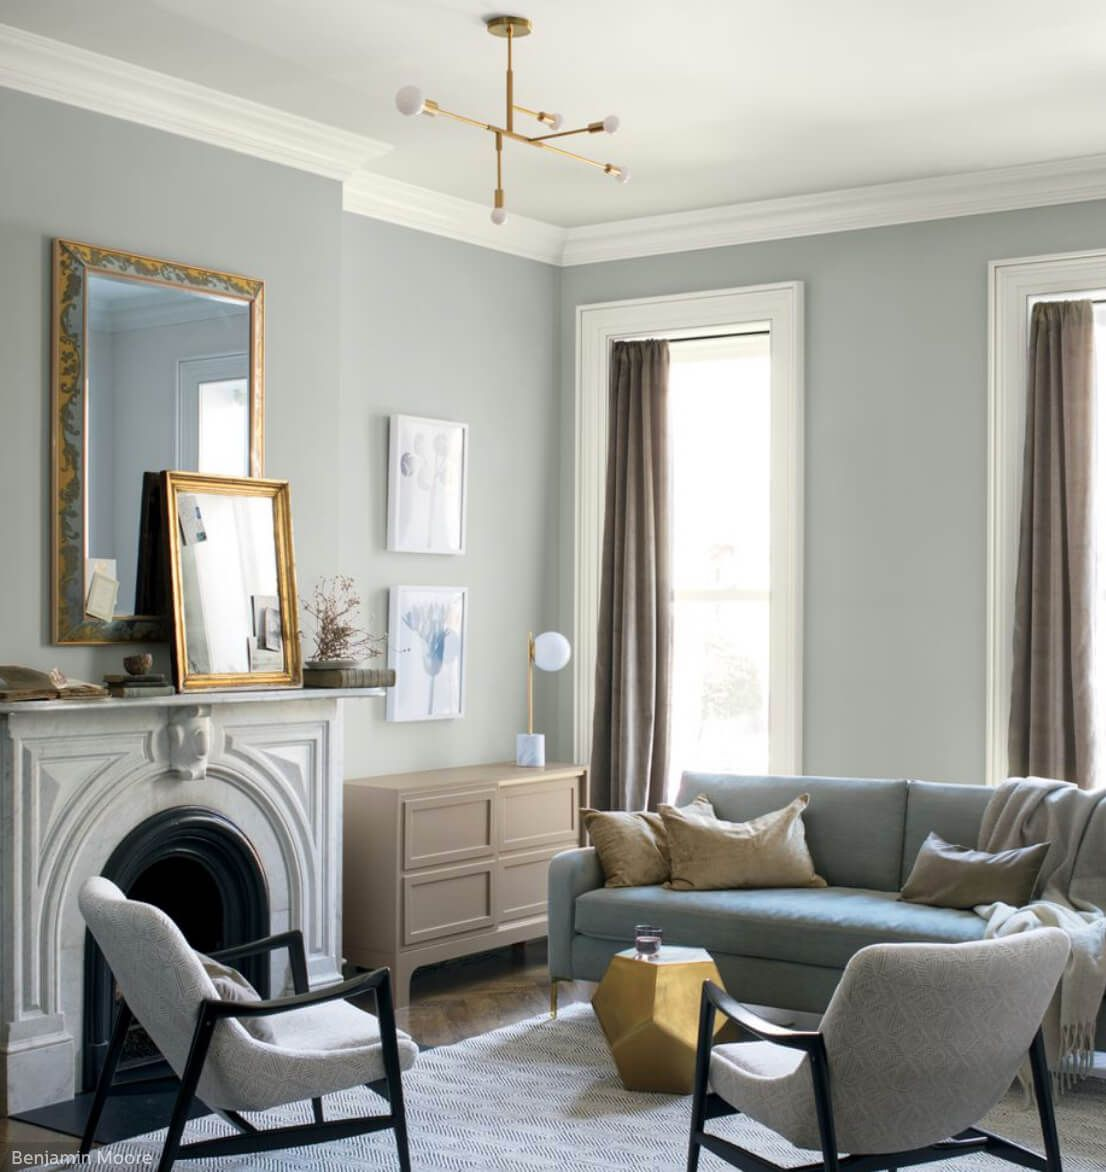 Benjamin Moore Colors For Your Living Room Decor: Benjamin Moore Metropolitan: 2019 Color Of The Year